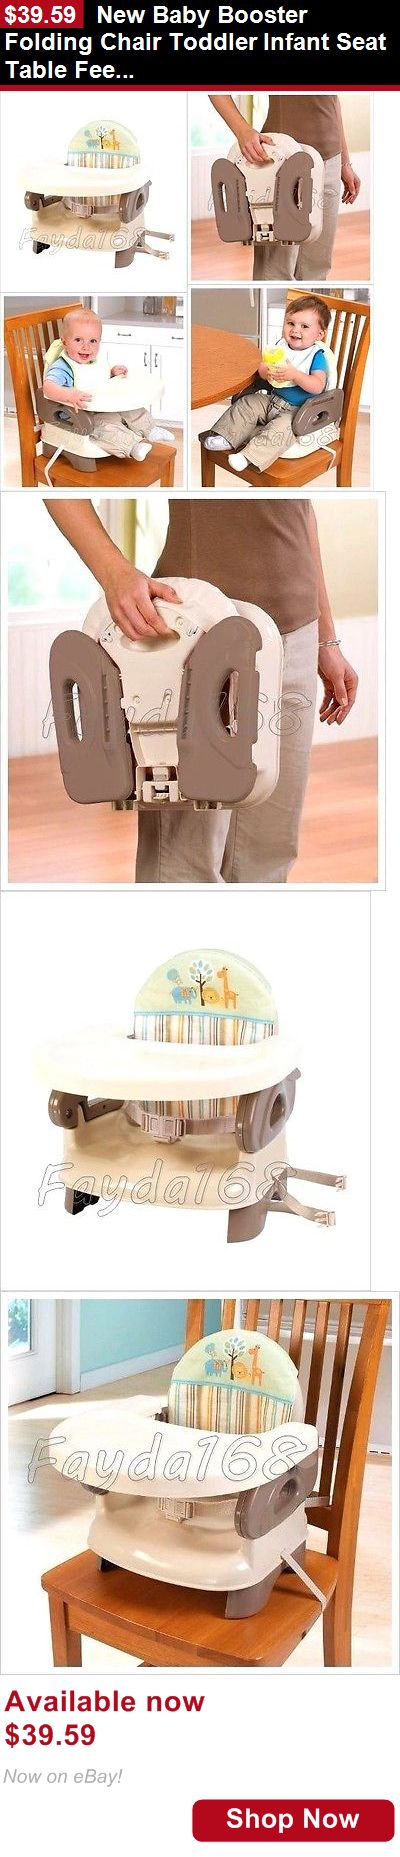 Booster Chairs: New Baby Booster Folding Chair Toddler Infant Seat Table Feeding Comfort Secure BUY IT NOW ONLY: $39.59